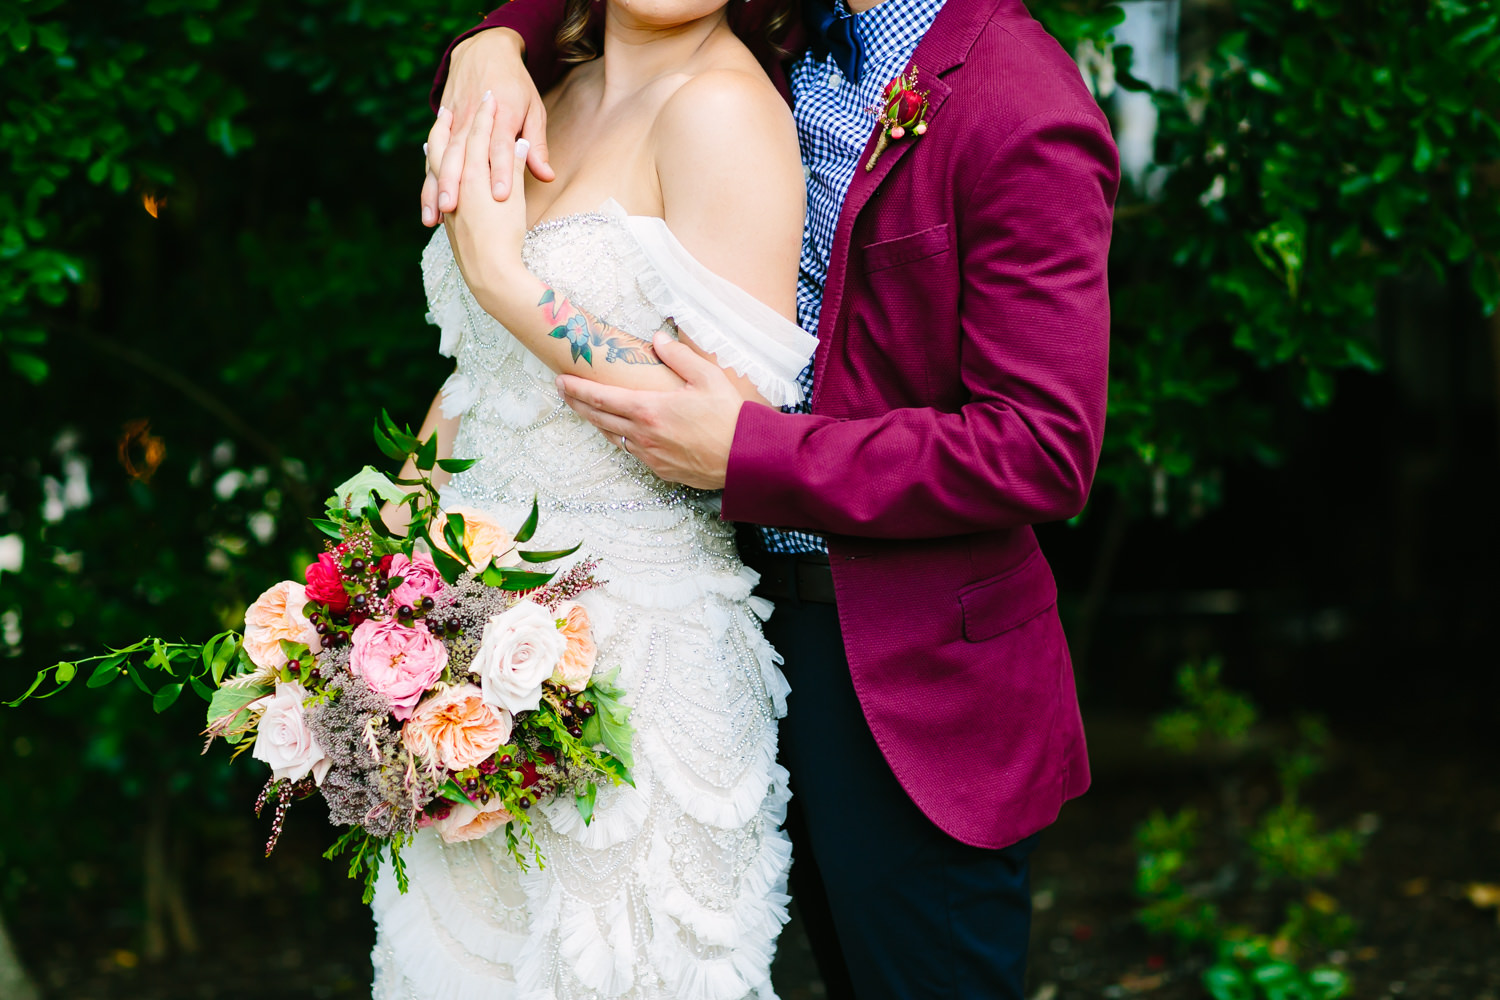 Bride and colorful groom - photo by AL Gawlik Photography